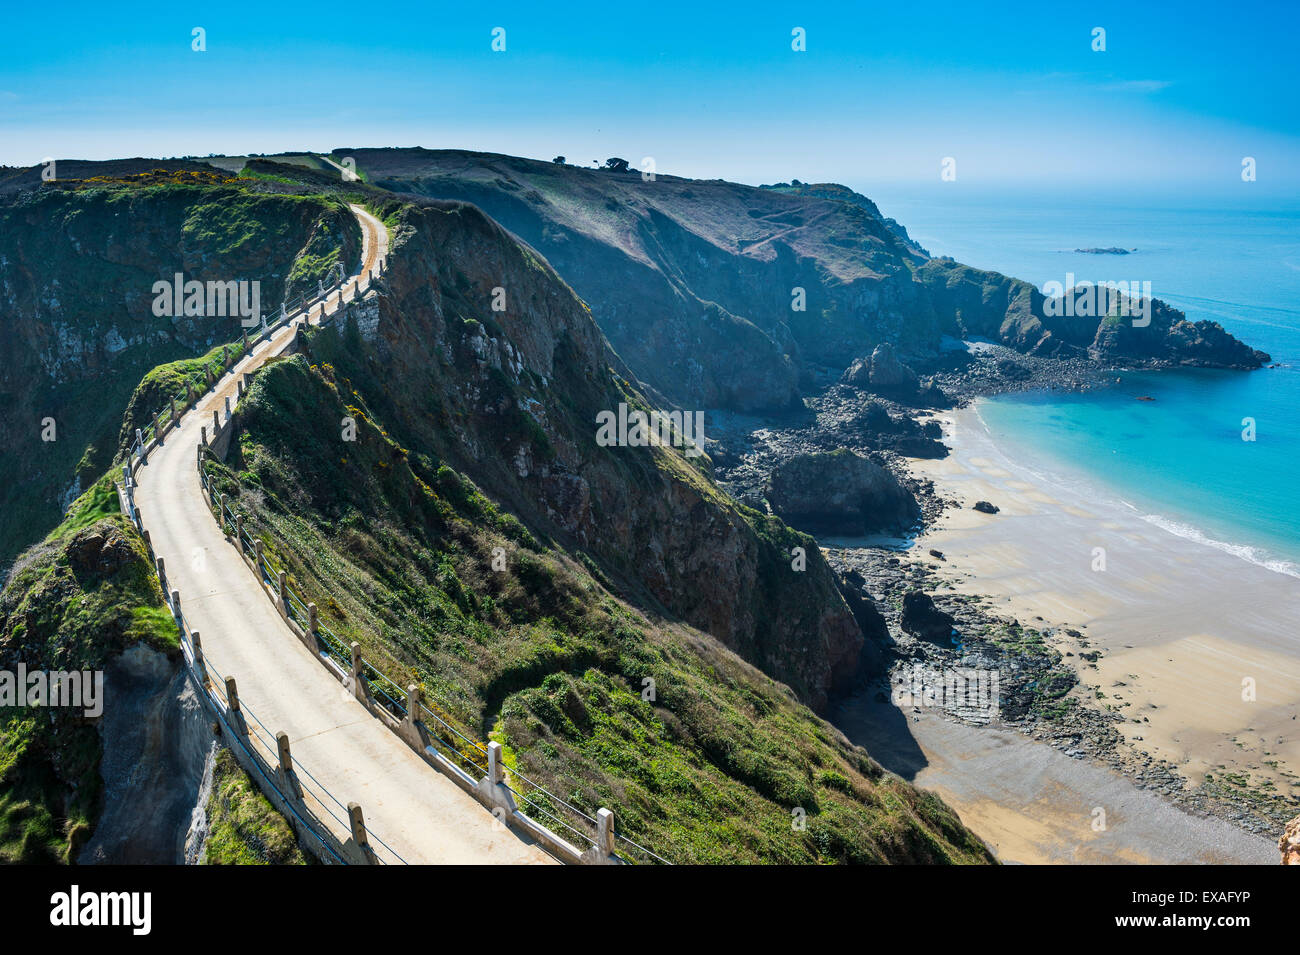 Road connecting the narrow isthmus of Greater and Little Sark, Channel Islands, United Kingdom, Europe - Stock Image